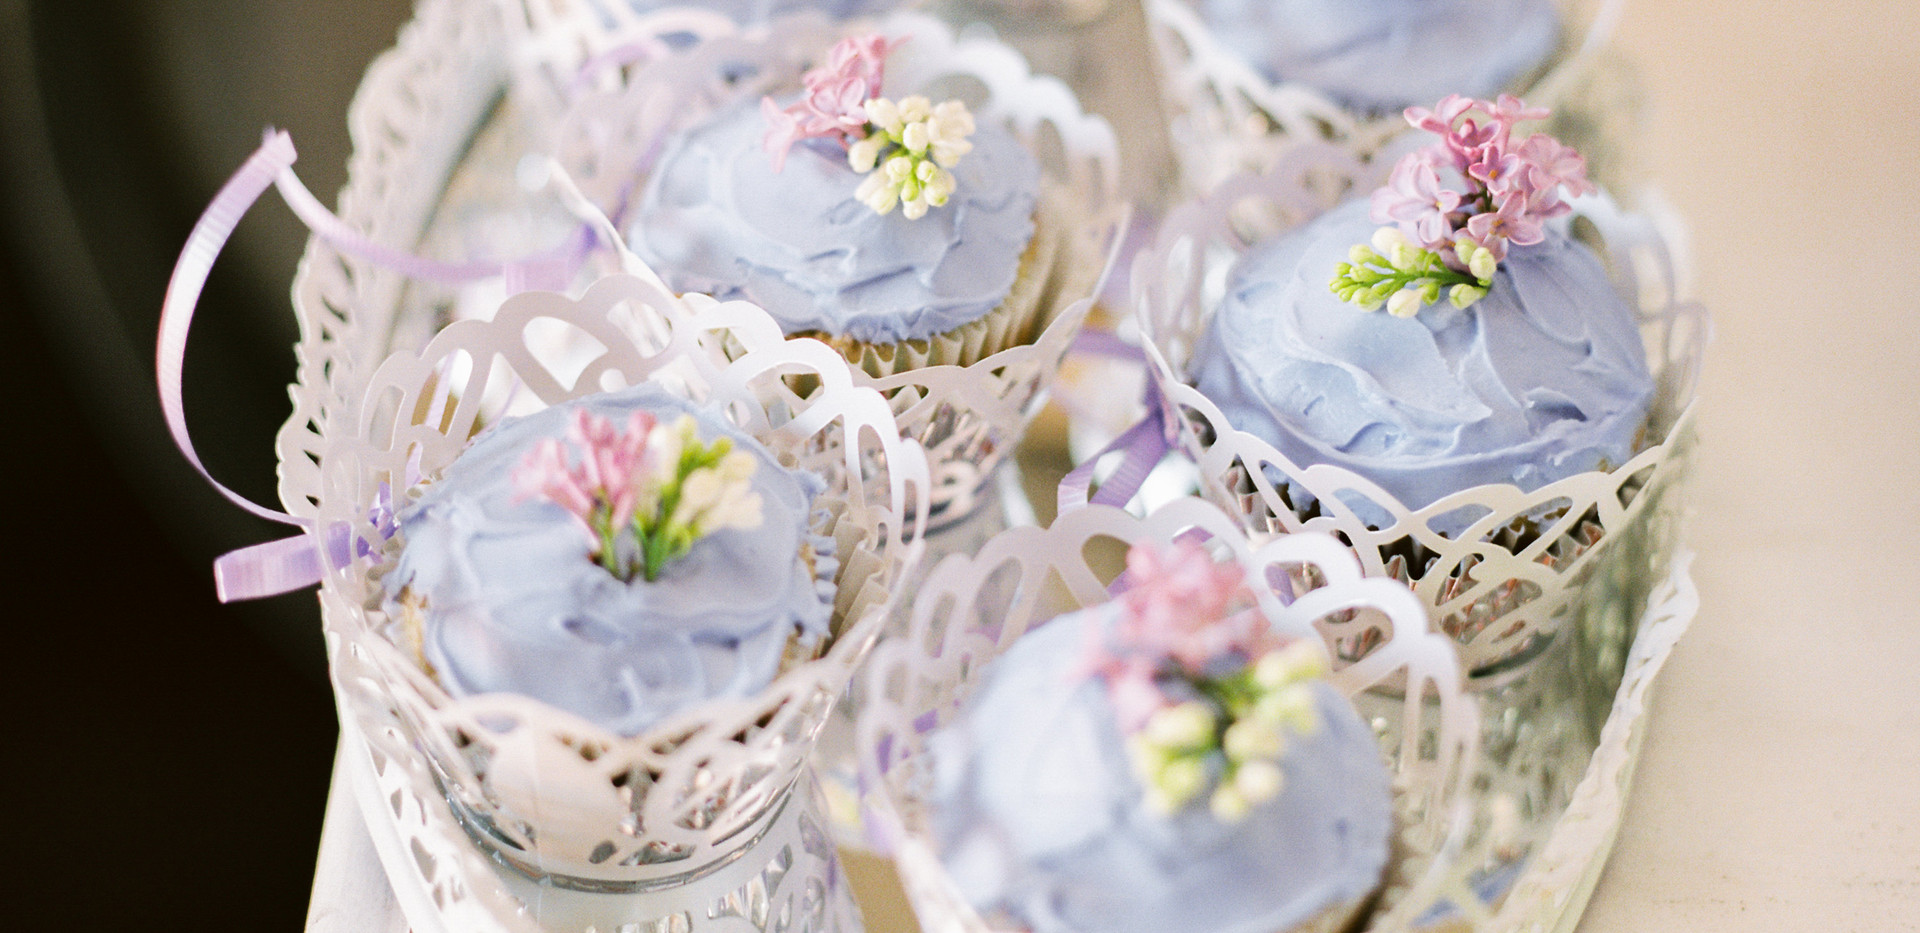 Gabriela Ines Photography. Cakes by Soft Peaks Cakery.